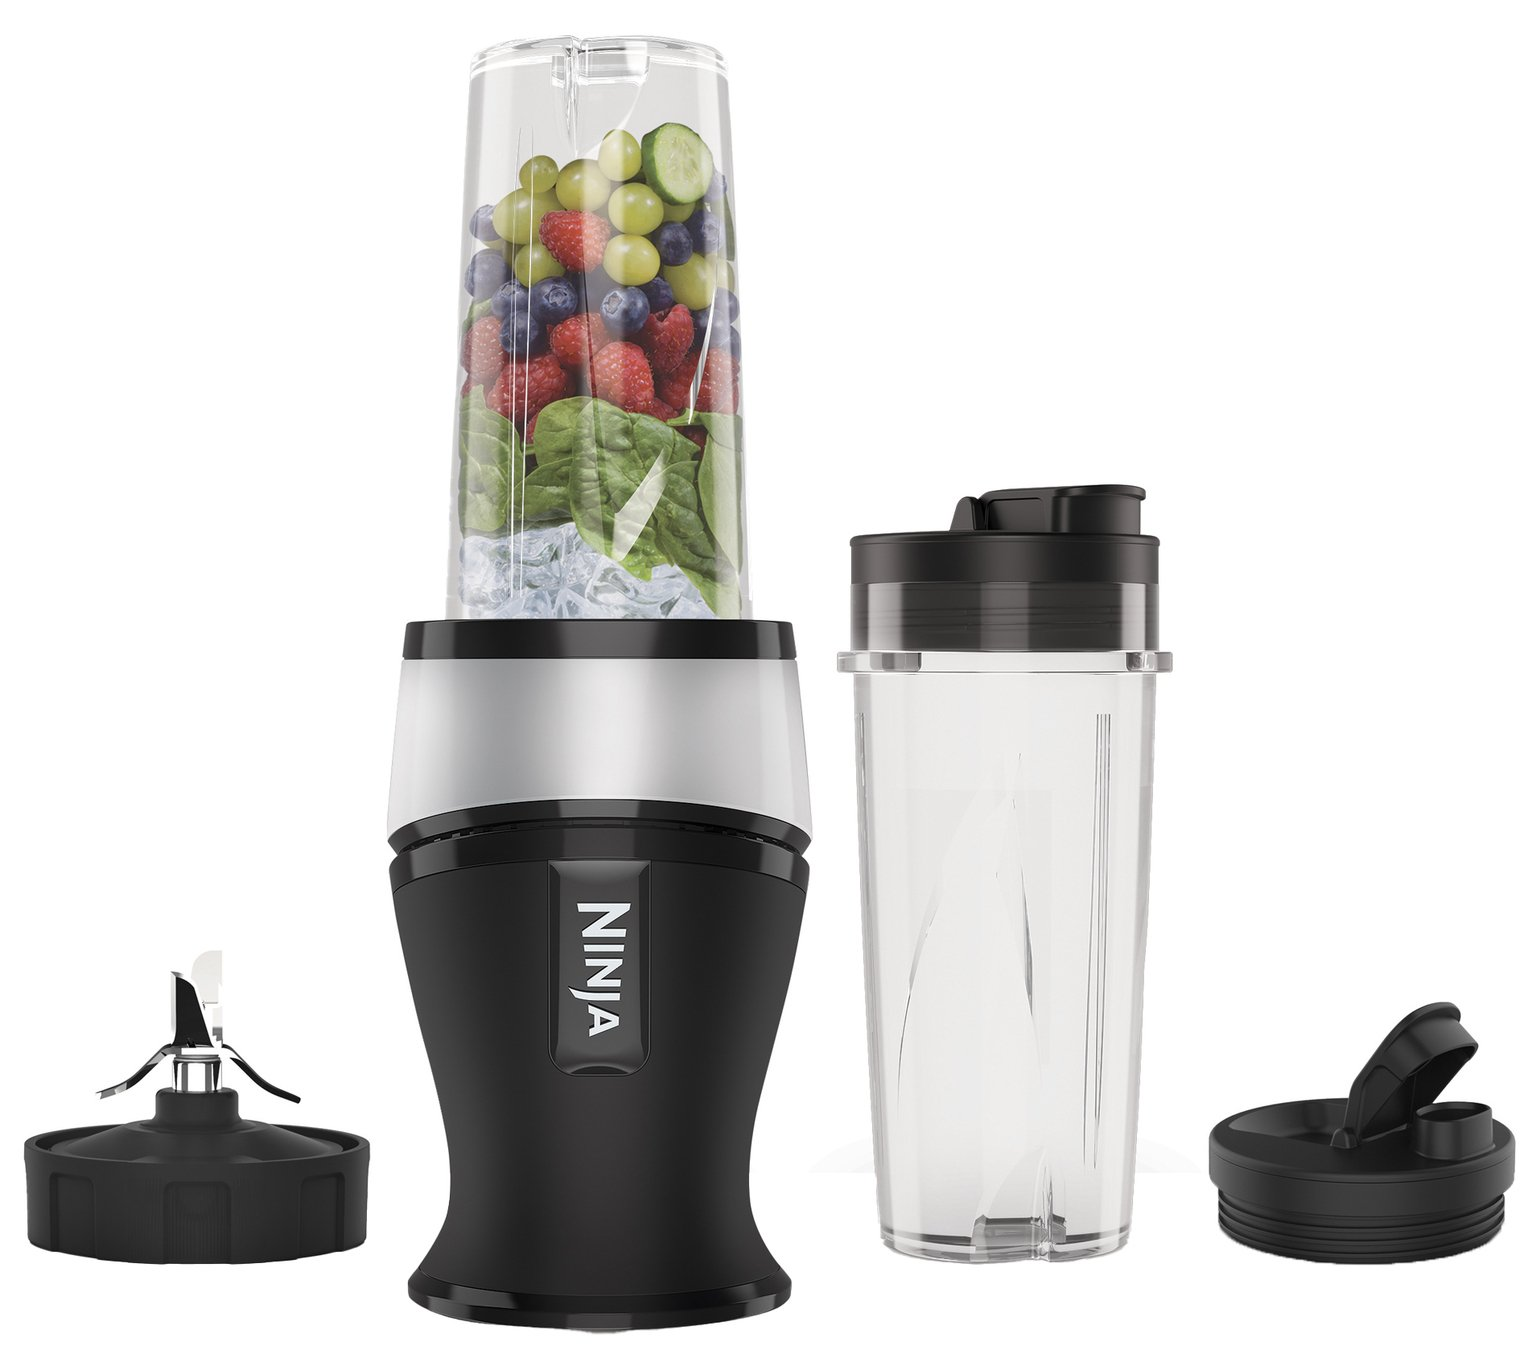 Ninja QB3001UKS Slim Blender and Smoothie Maker